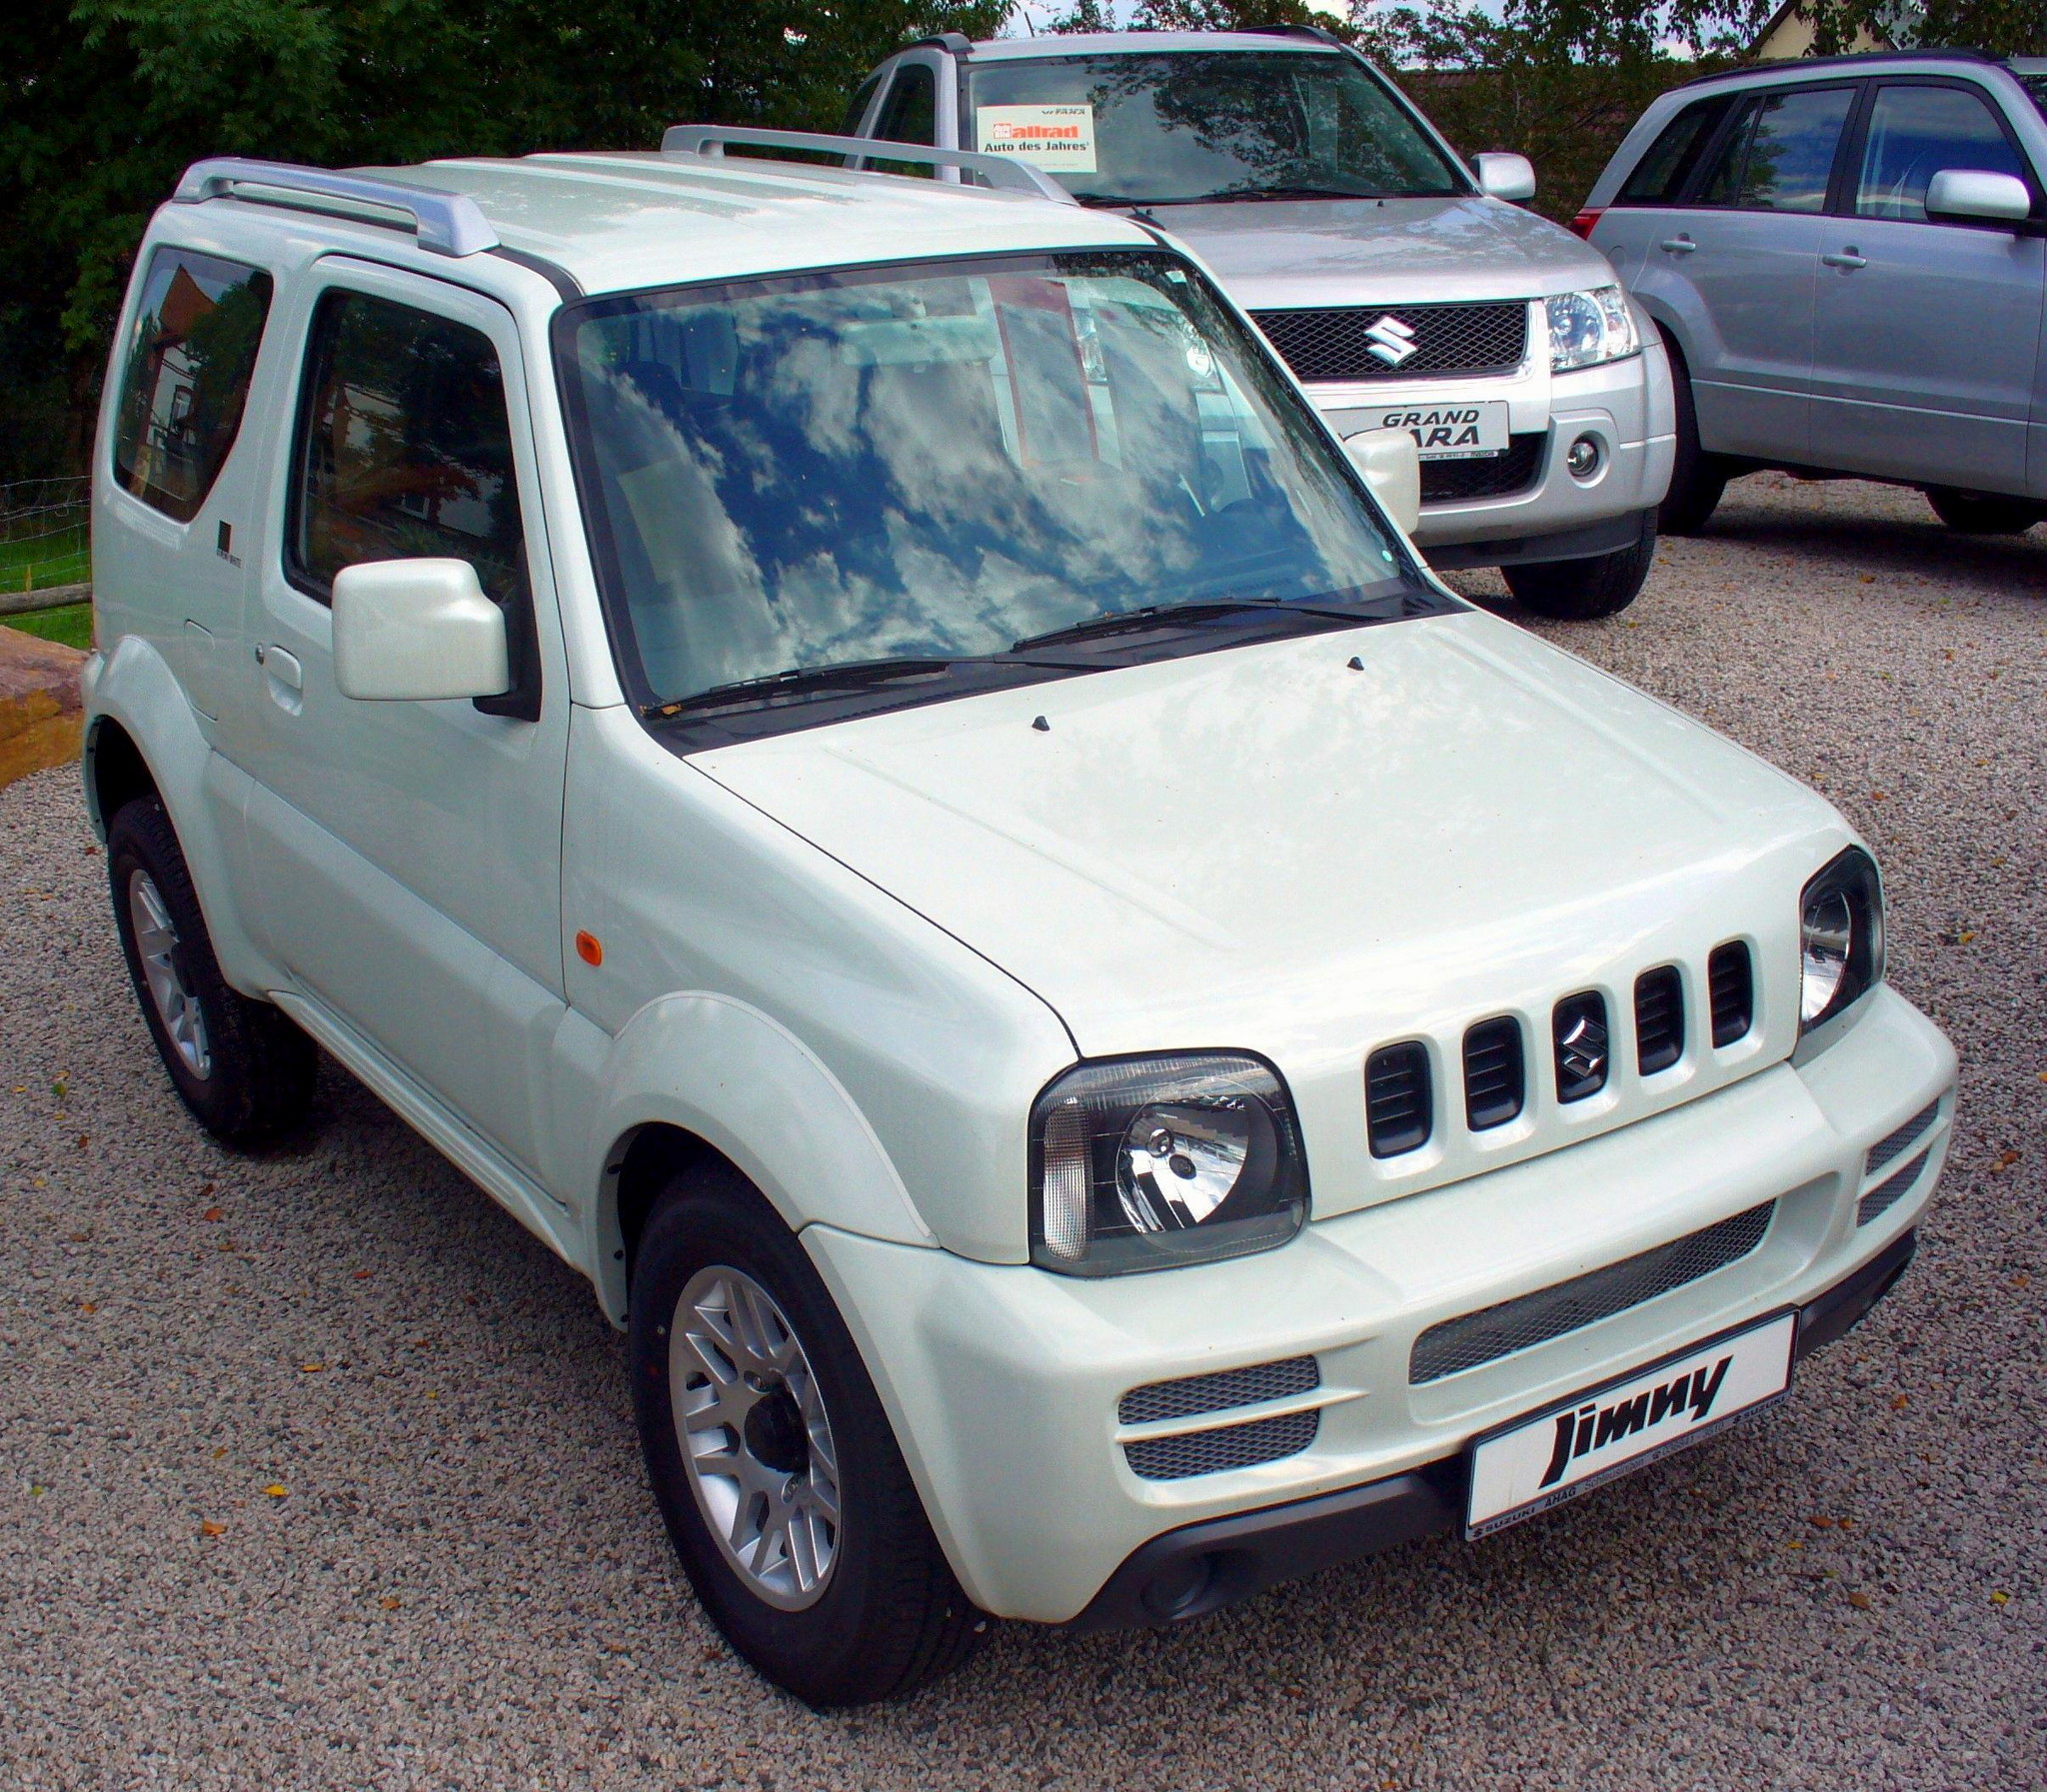 suzuki jimny black white technical details history photos on better parts ltd. Black Bedroom Furniture Sets. Home Design Ideas